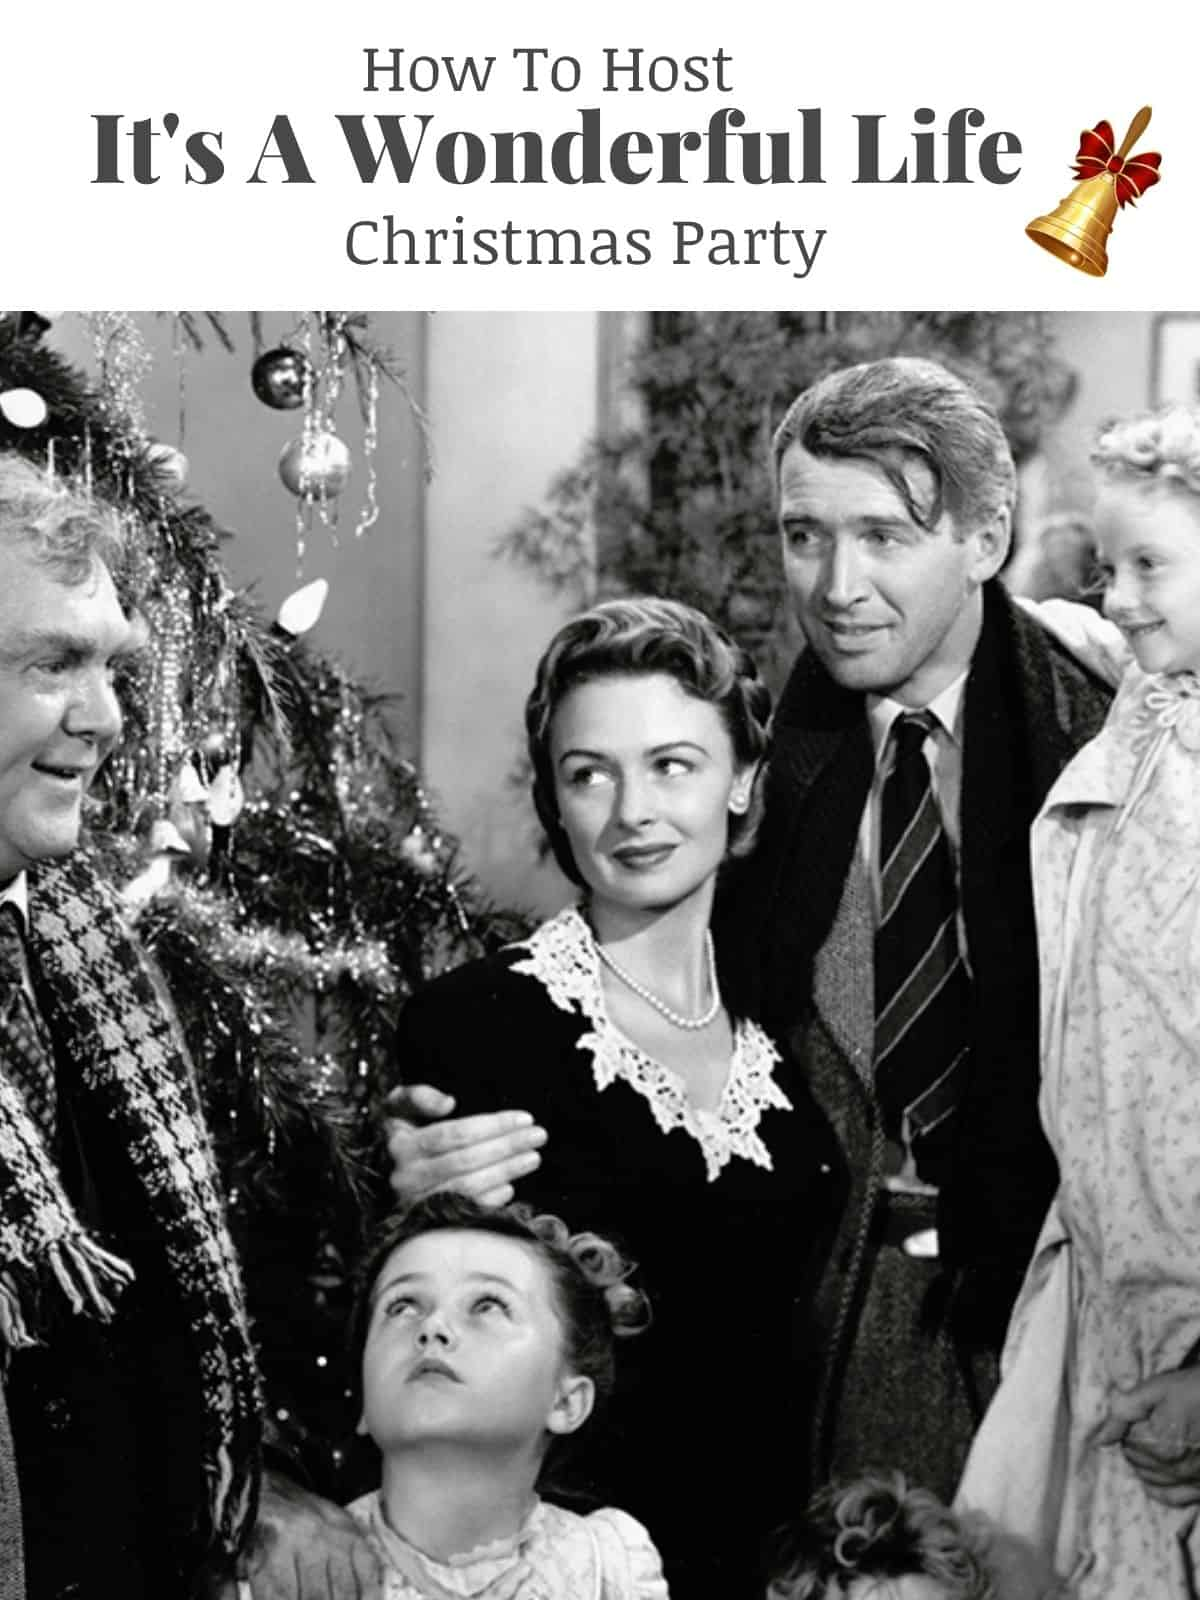 its a wonderful life movie clip with main characters